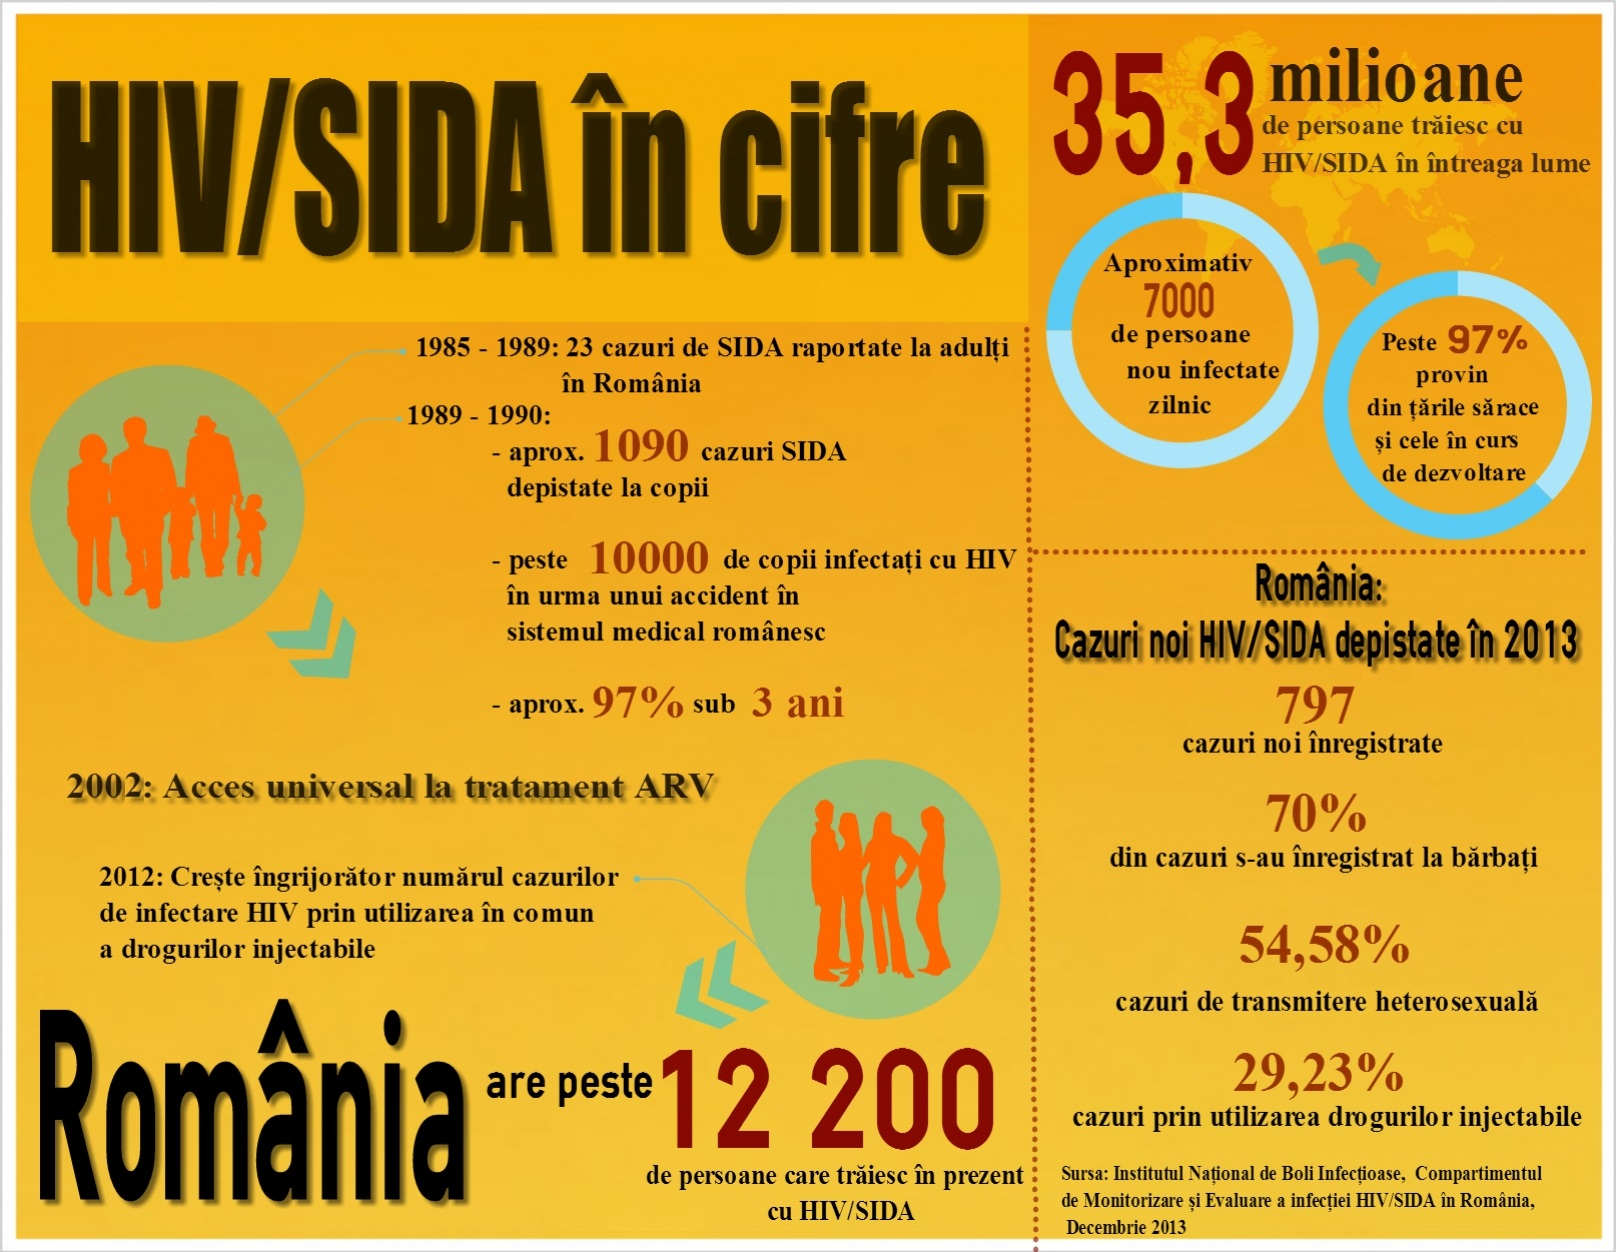 HIV_Sida in cifre_co